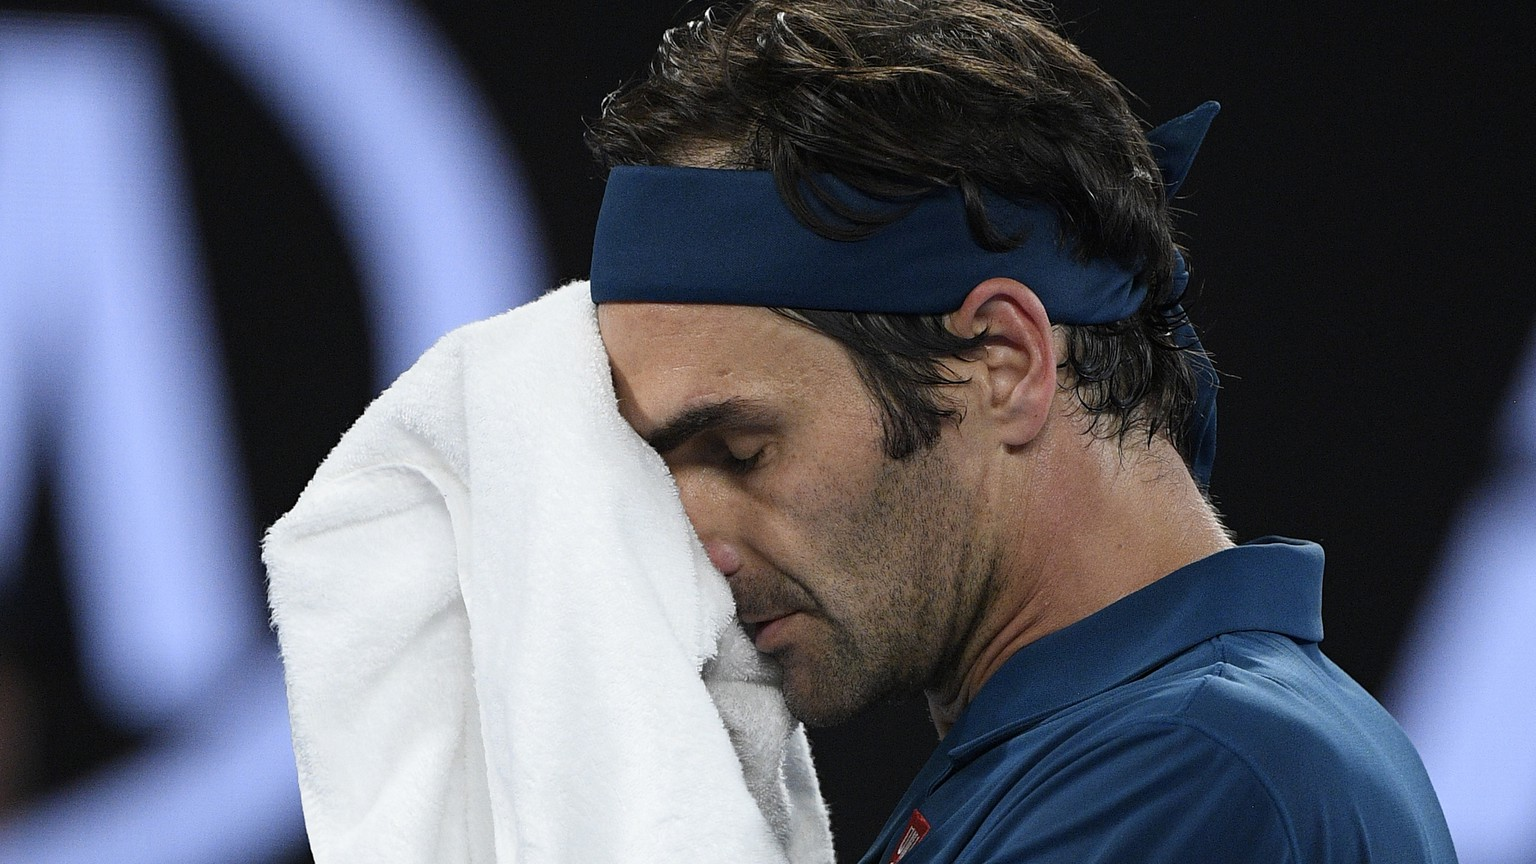 Switzerland's Roger Federer wipes the sweat from his face during his fourth round match against Greece's Stefanos Tsitsipas at the Australian Open tennis championships in Melbourne, Australia, Sunday, Jan. 20, 2019. (AP Photo/Andy Brownbill)